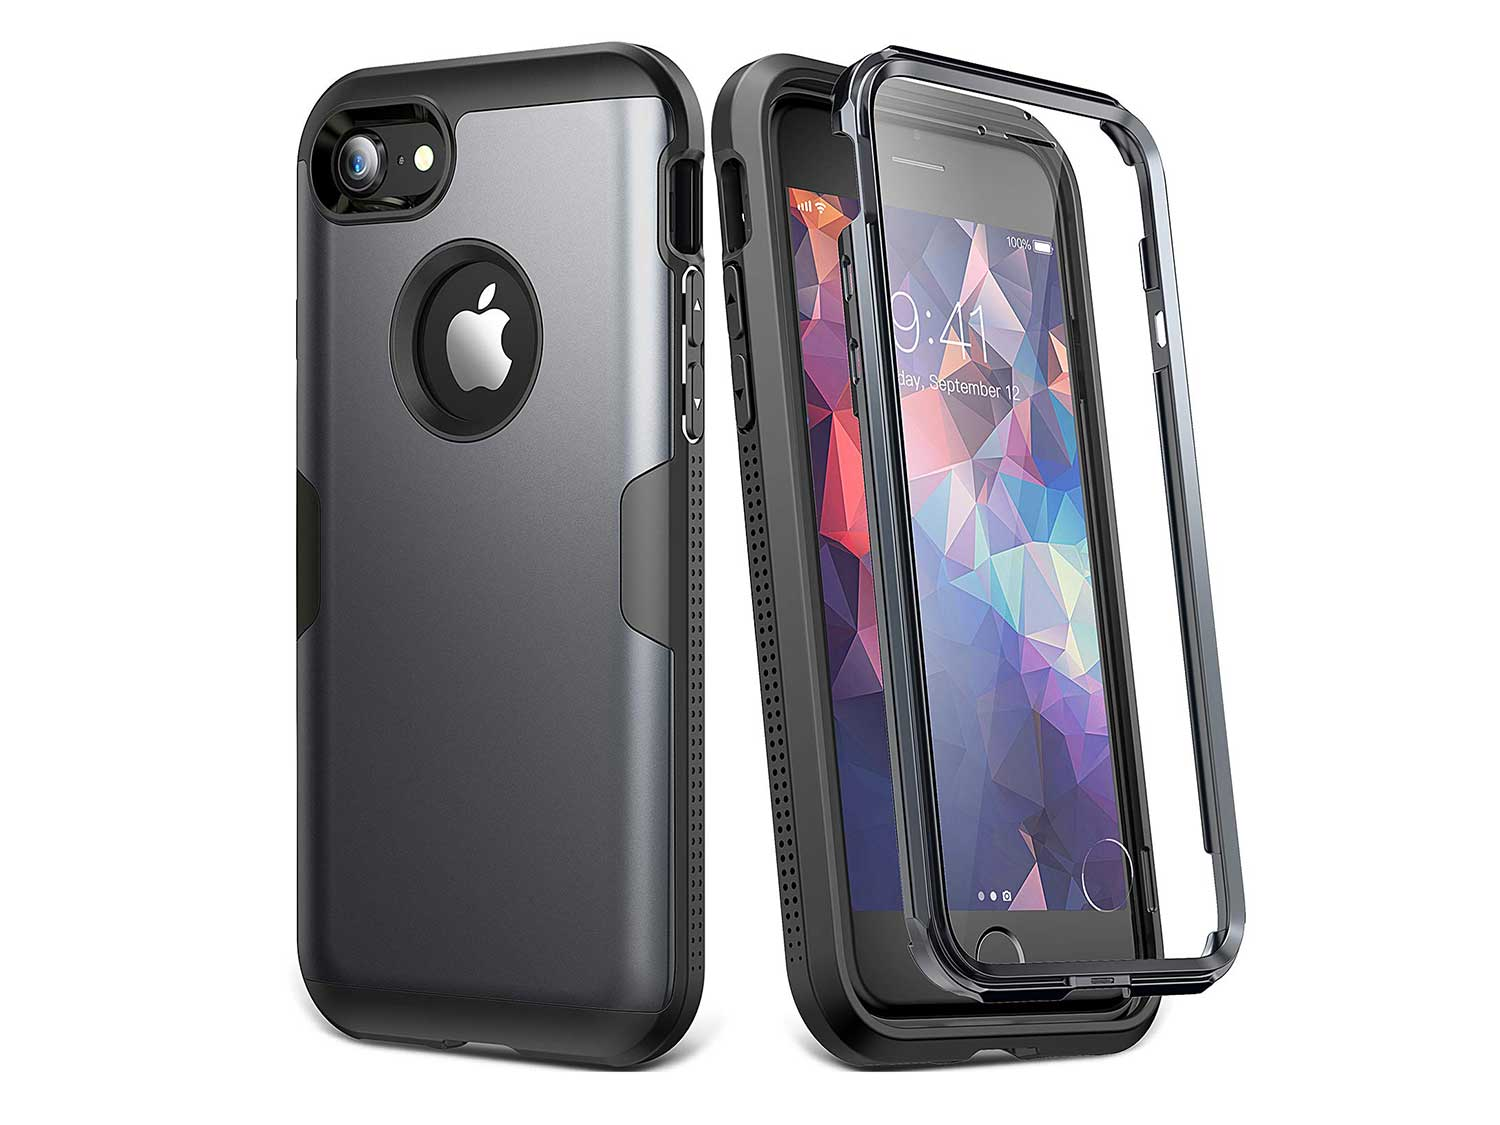 YOUMAKER Case for iPhone 8 & iPhone 7